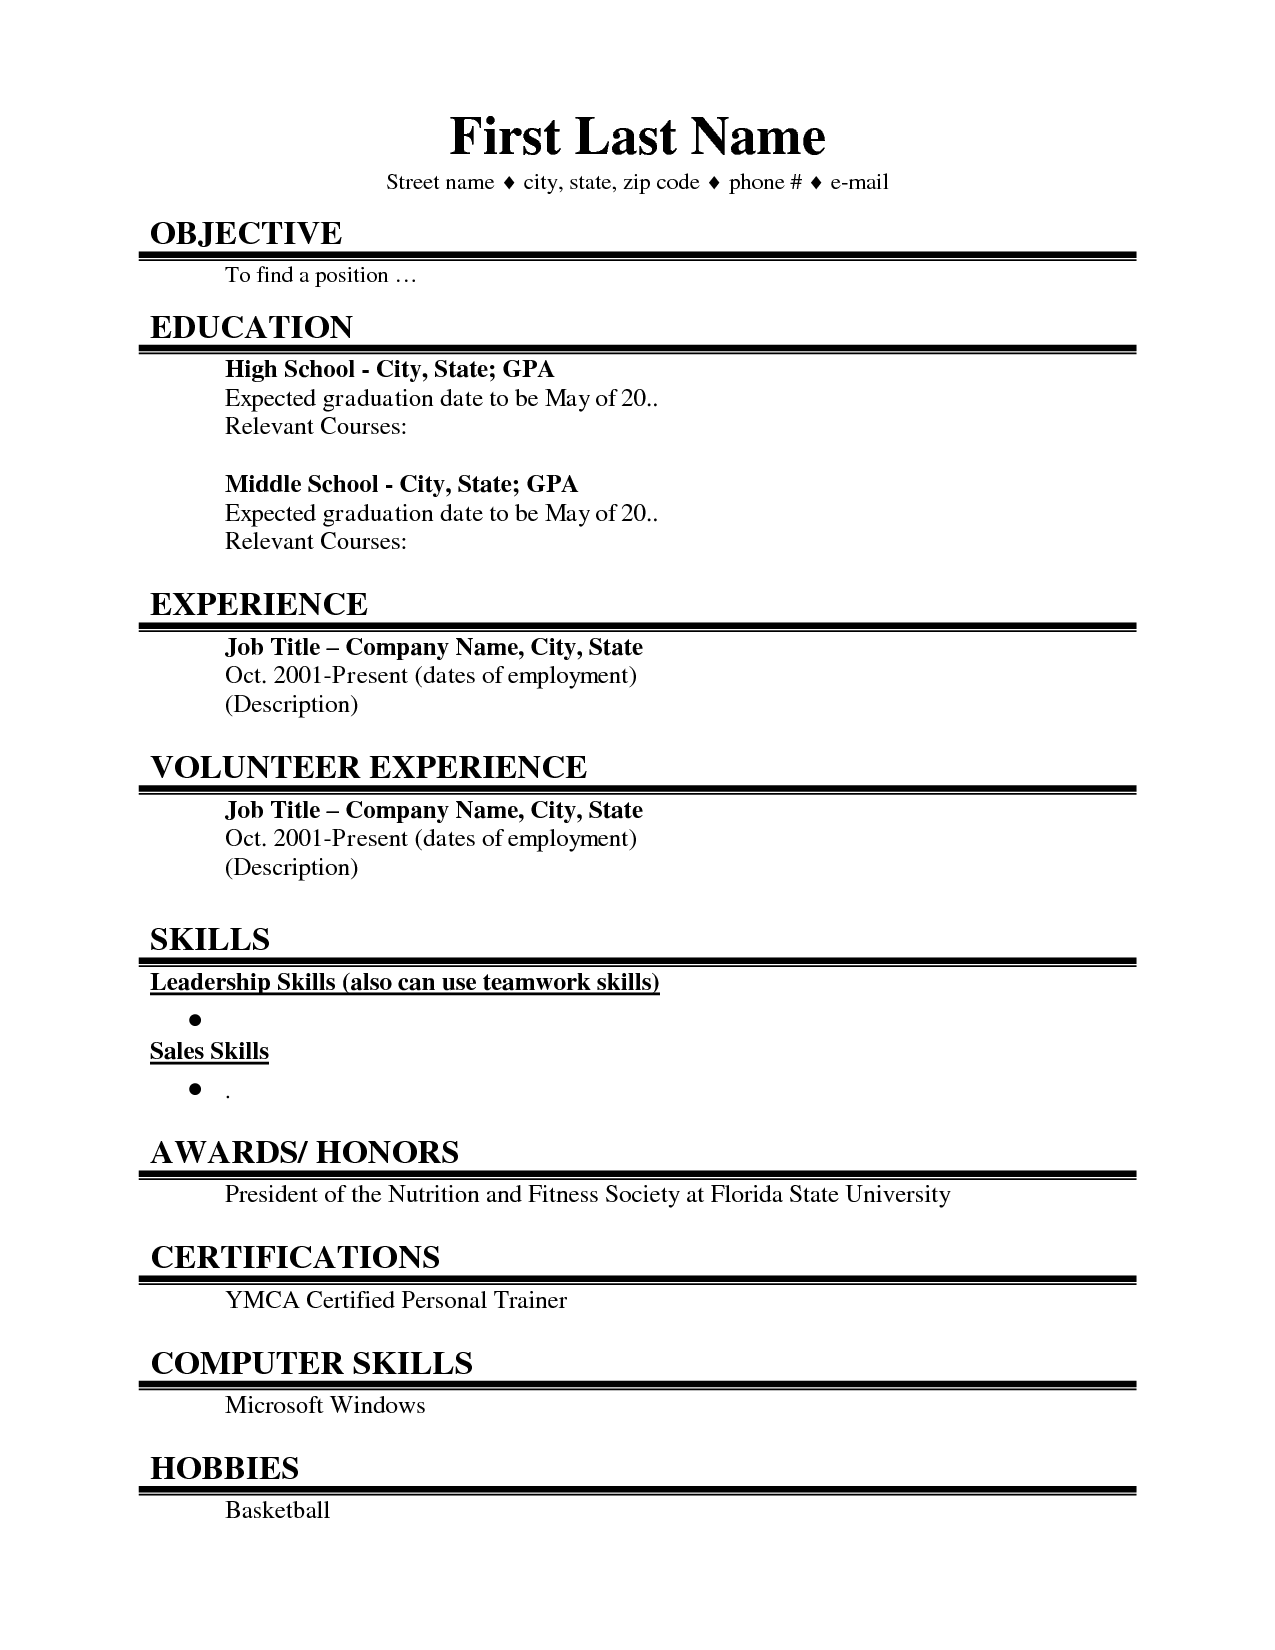 Resume Valley Resumes With Photo Sample Civilian And Federal Resumes